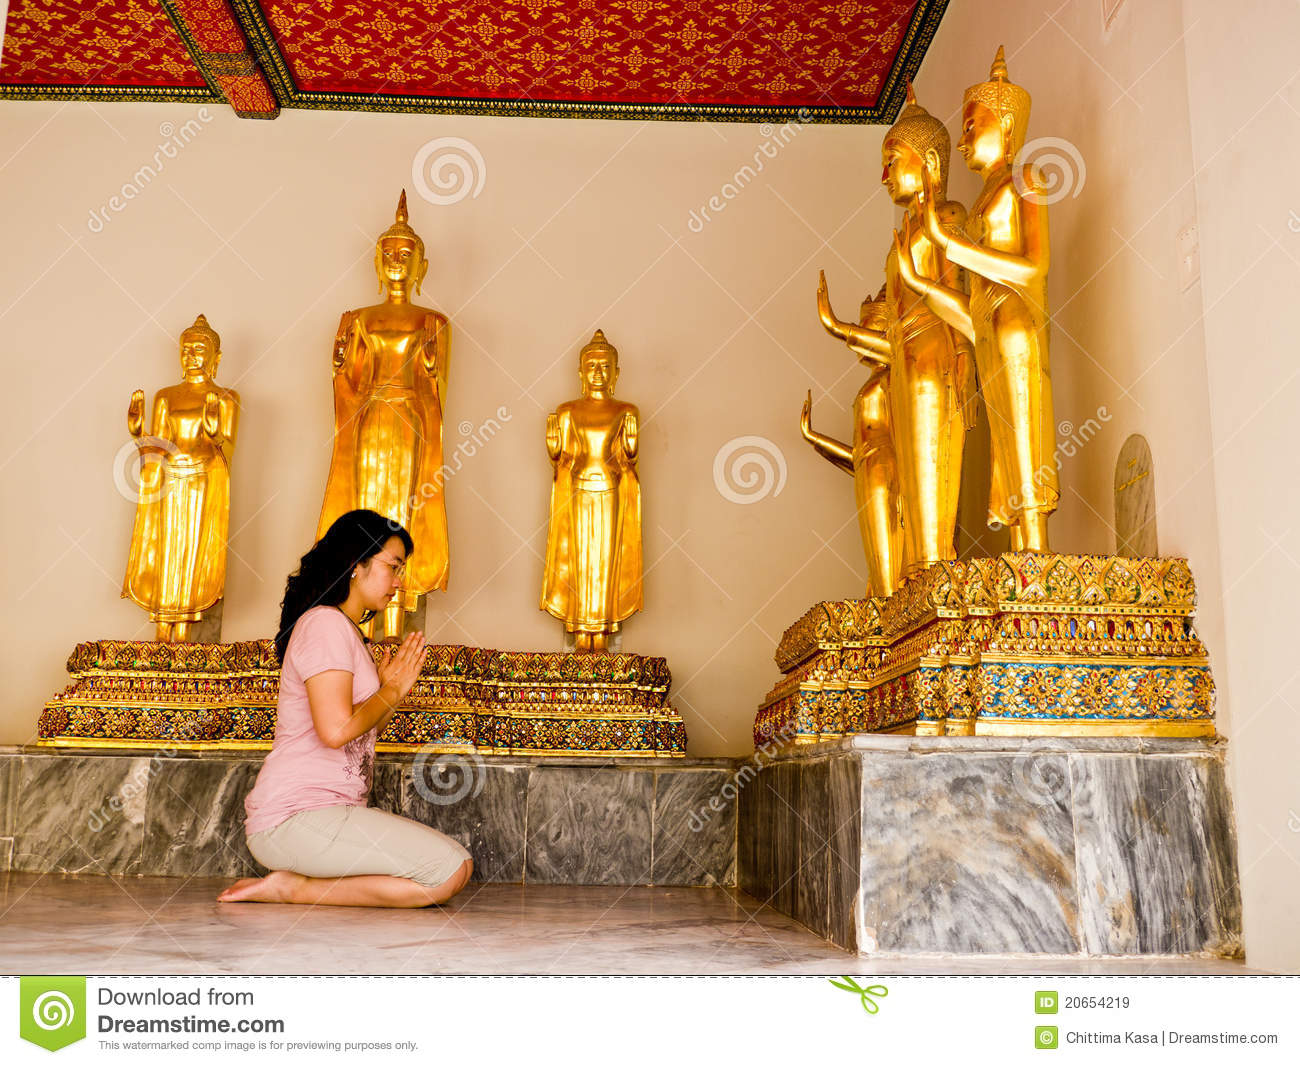 Buddhist internet dating